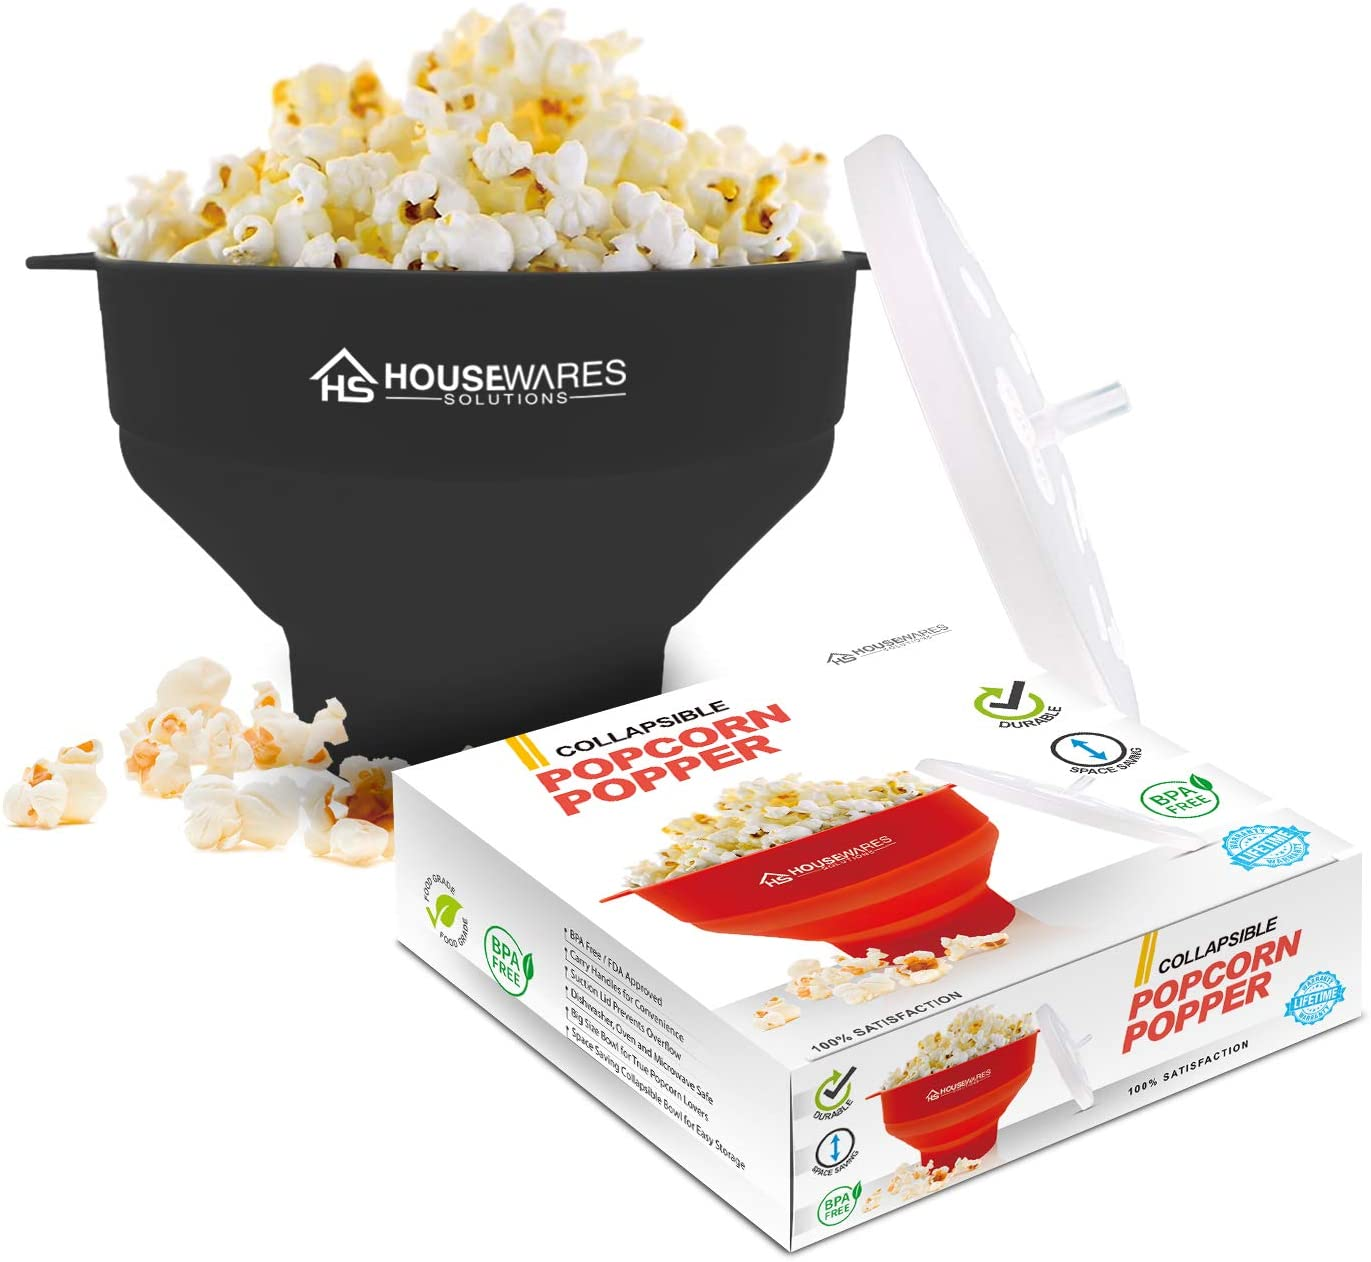 Collapsible Silicone Microwave Hot Air Popcorn Popper Bowl With Lid and Handles - Black